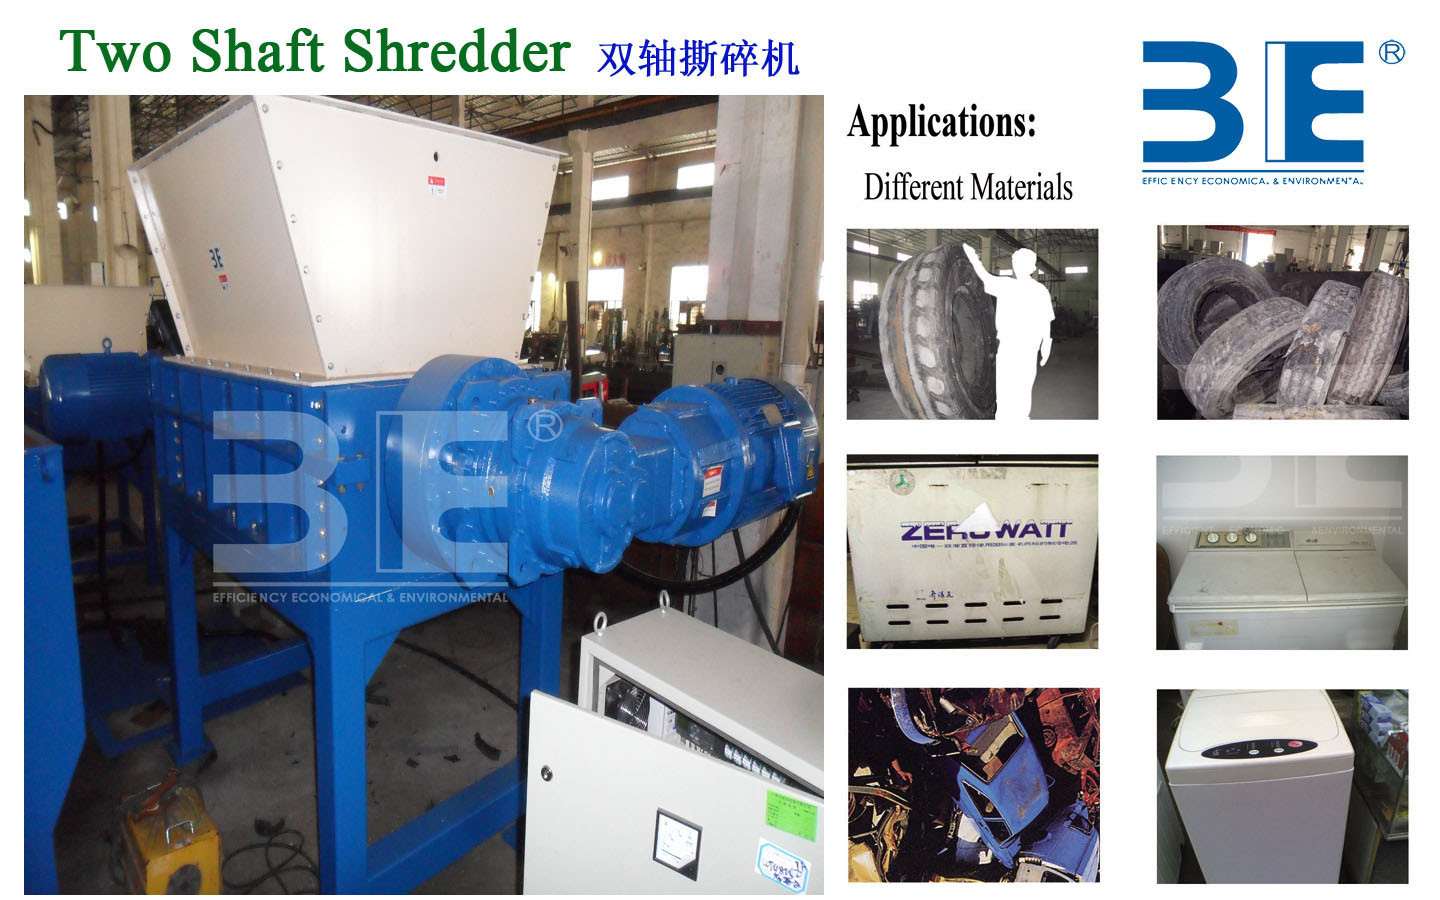 Two Shaft Shredder/Tire Shredder/Scrap Metal Shredder